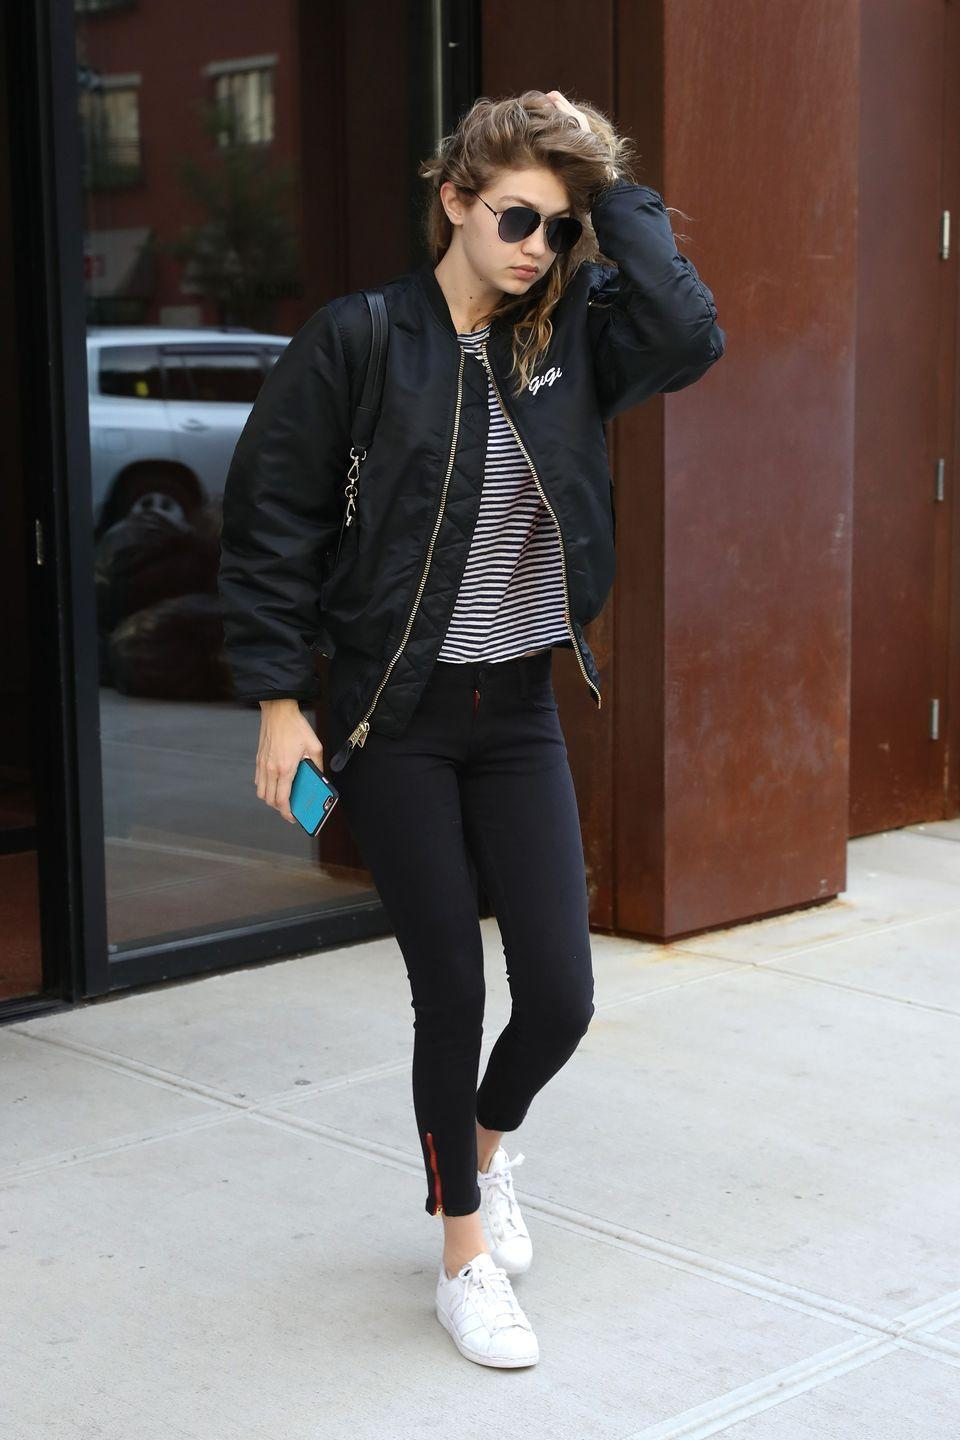 """<p>Hadid rocks her go-to athleisure look with a personalized black bomber jacket featuring a small """"Gigi"""" logo on the chest</p>"""